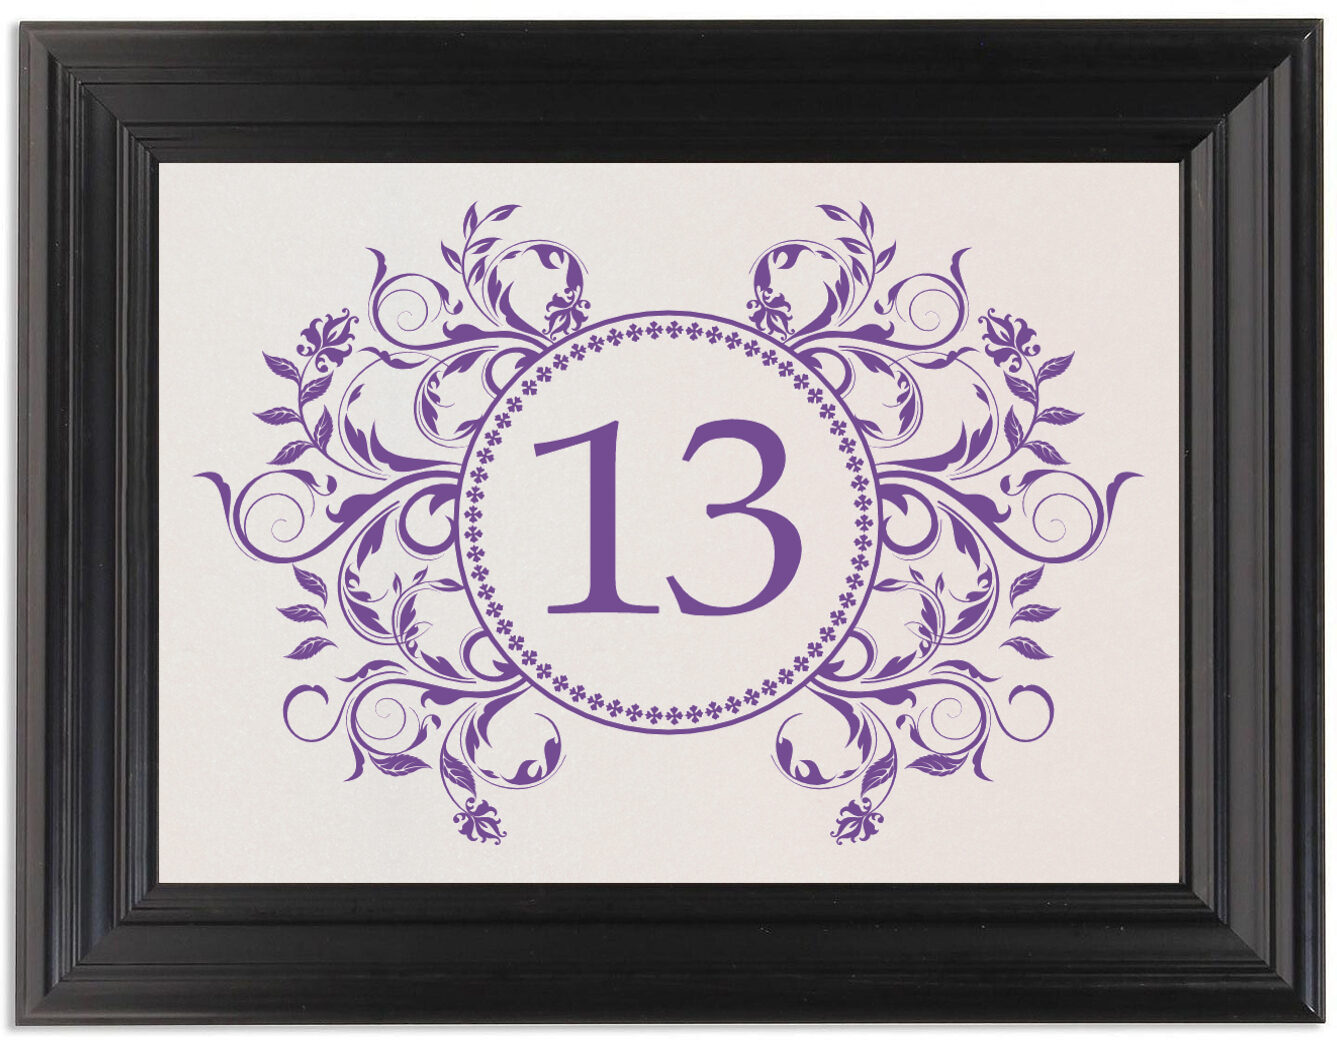 Framed Photograph of Gingee Full Table Numbers